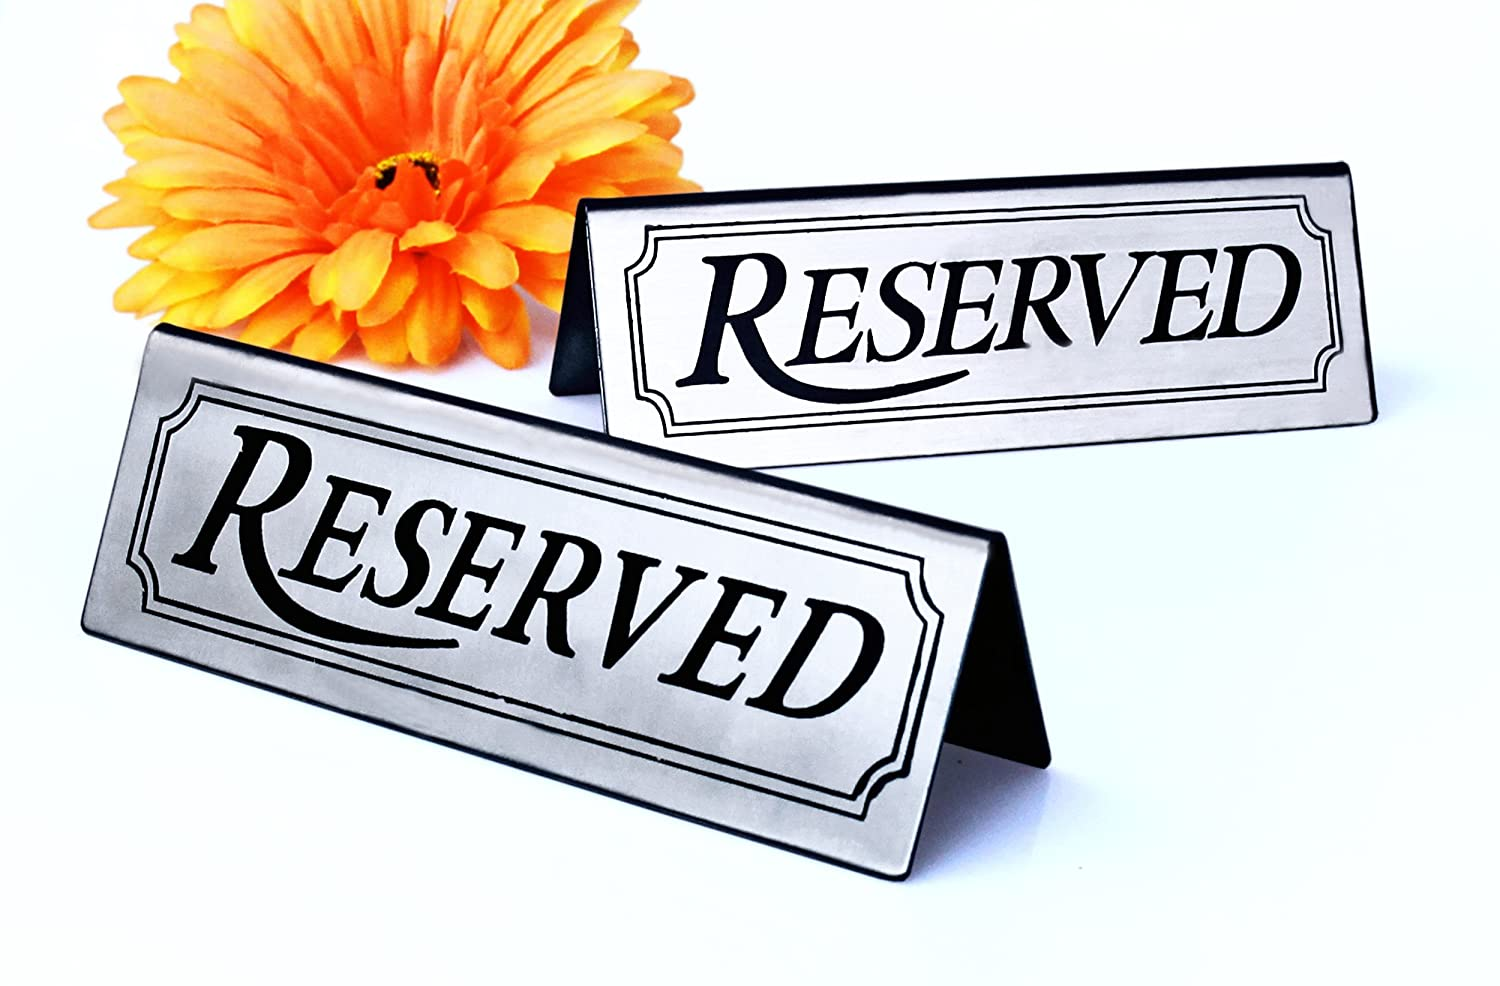 Reserved New Star Foodservice 26900 Stainless Steel Tent Sign 4.75x 1.75 Set of 6